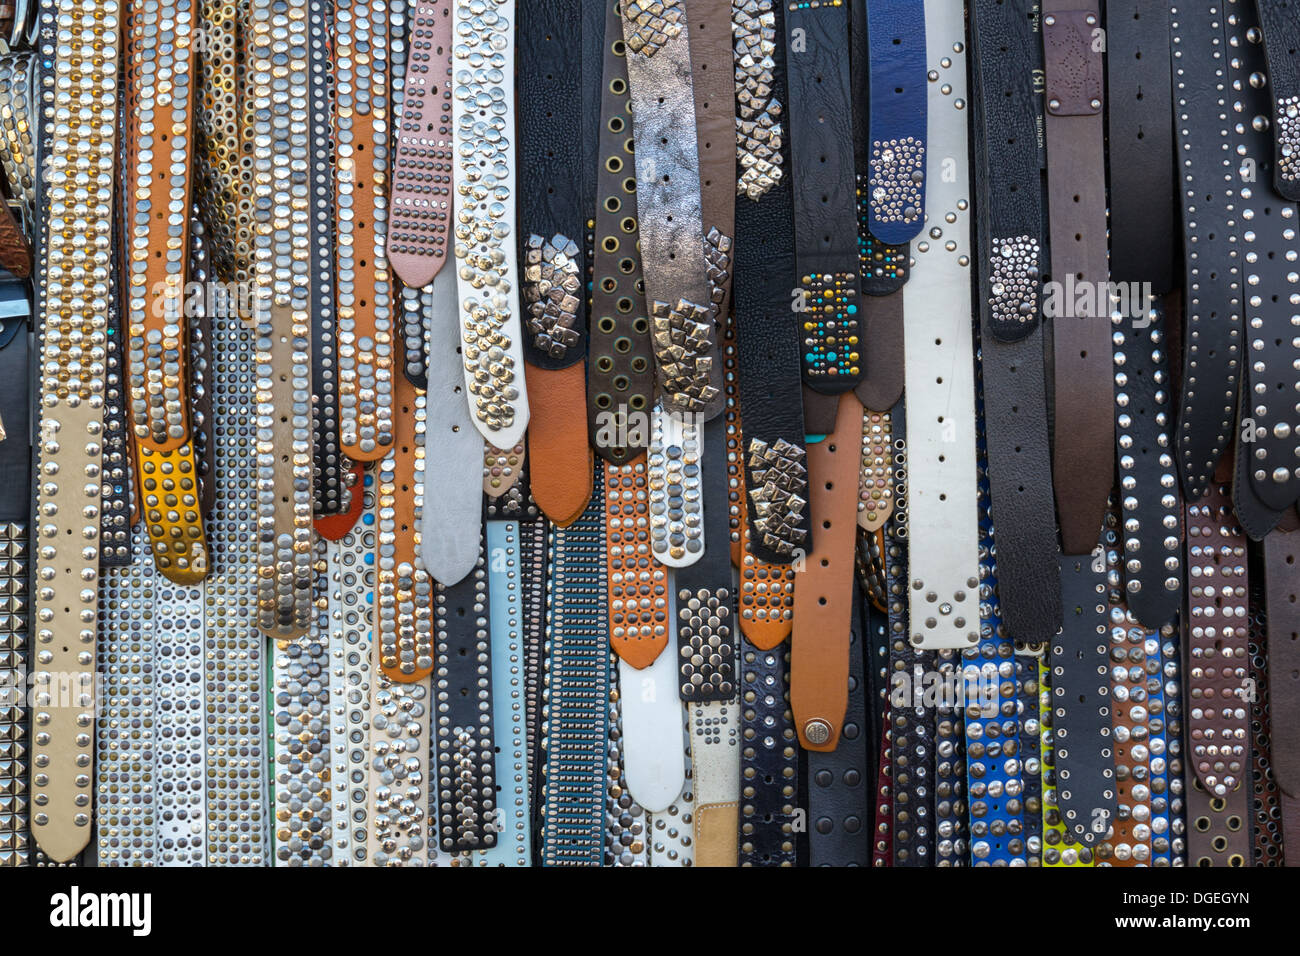 Leather belts hung up for sale - Stock Image